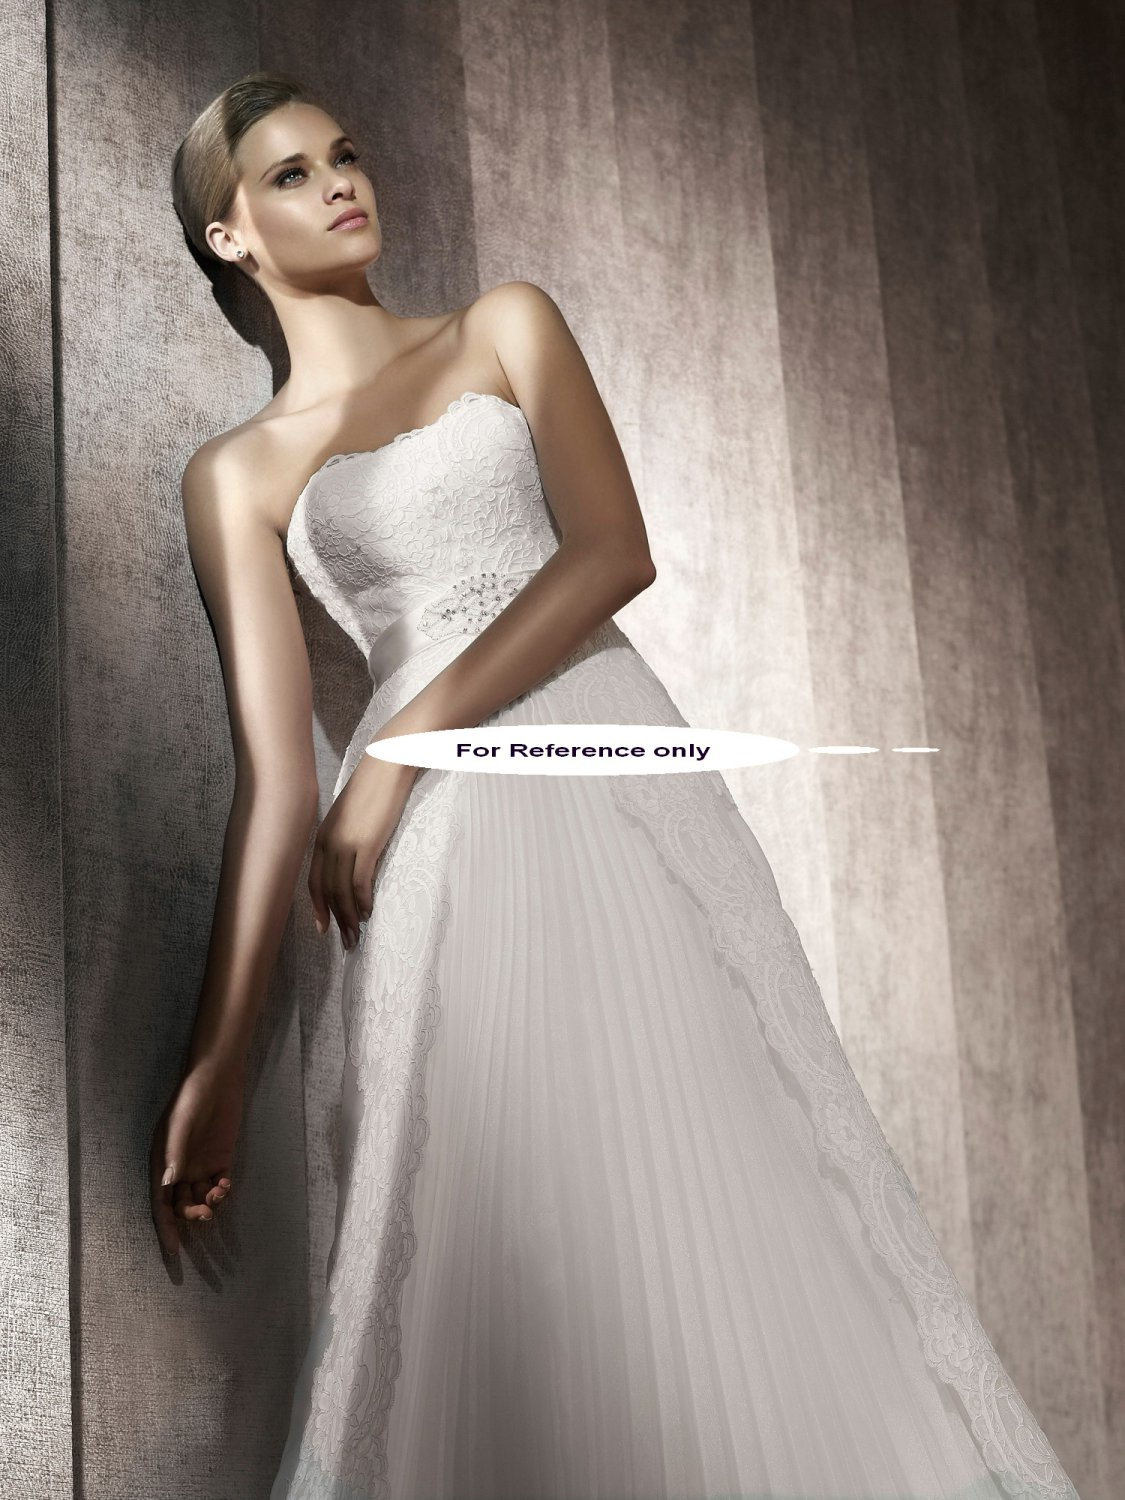 Strapless A-line wedding gown-Pasion